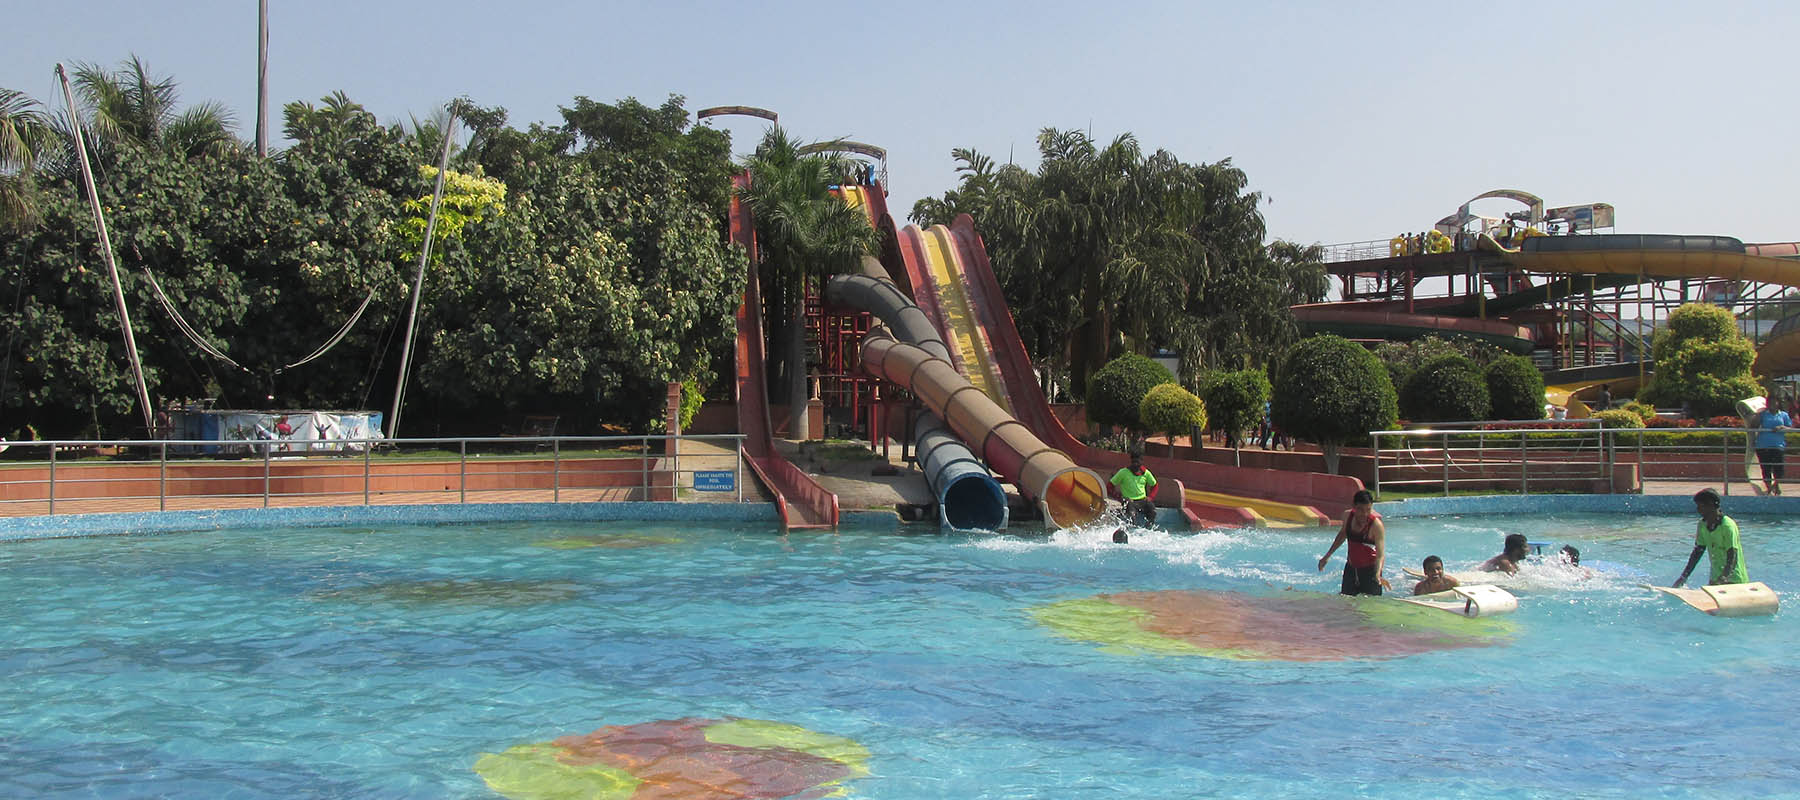 Church Fellowship in a Water Park? Count me in!   New Apostolic